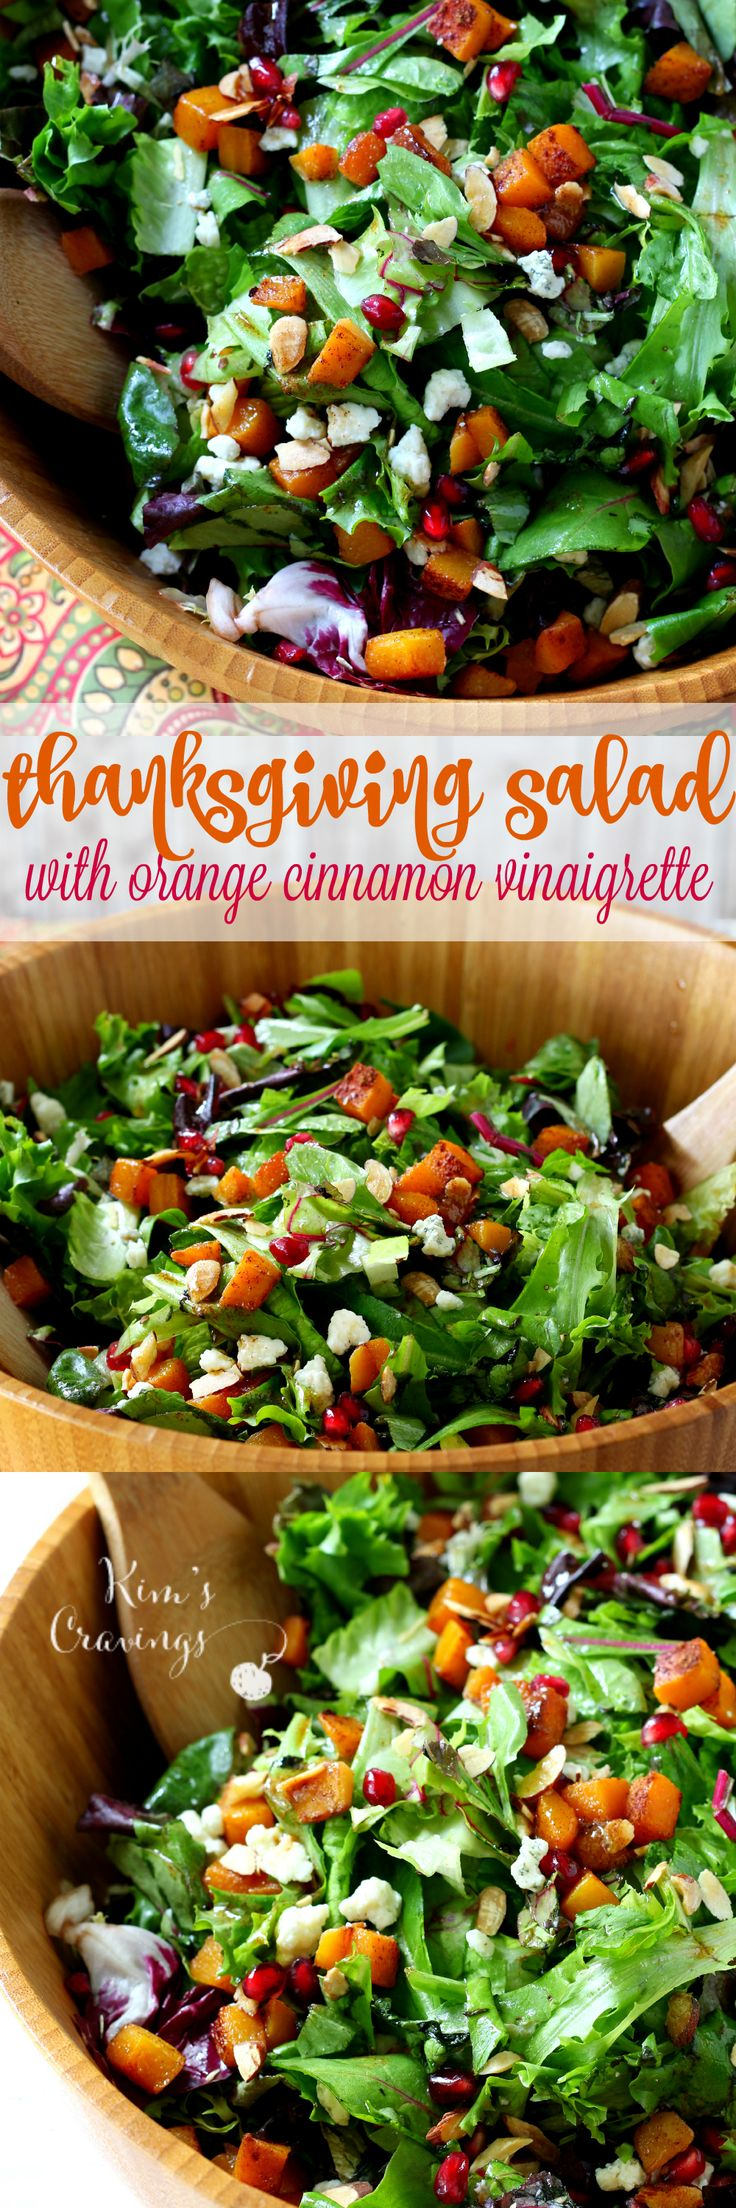 Easy Thanksgiving Salad with roasted butternut squash, pom seeds and an orange cinnamon vinaigrette that shakes up easily in a jar!